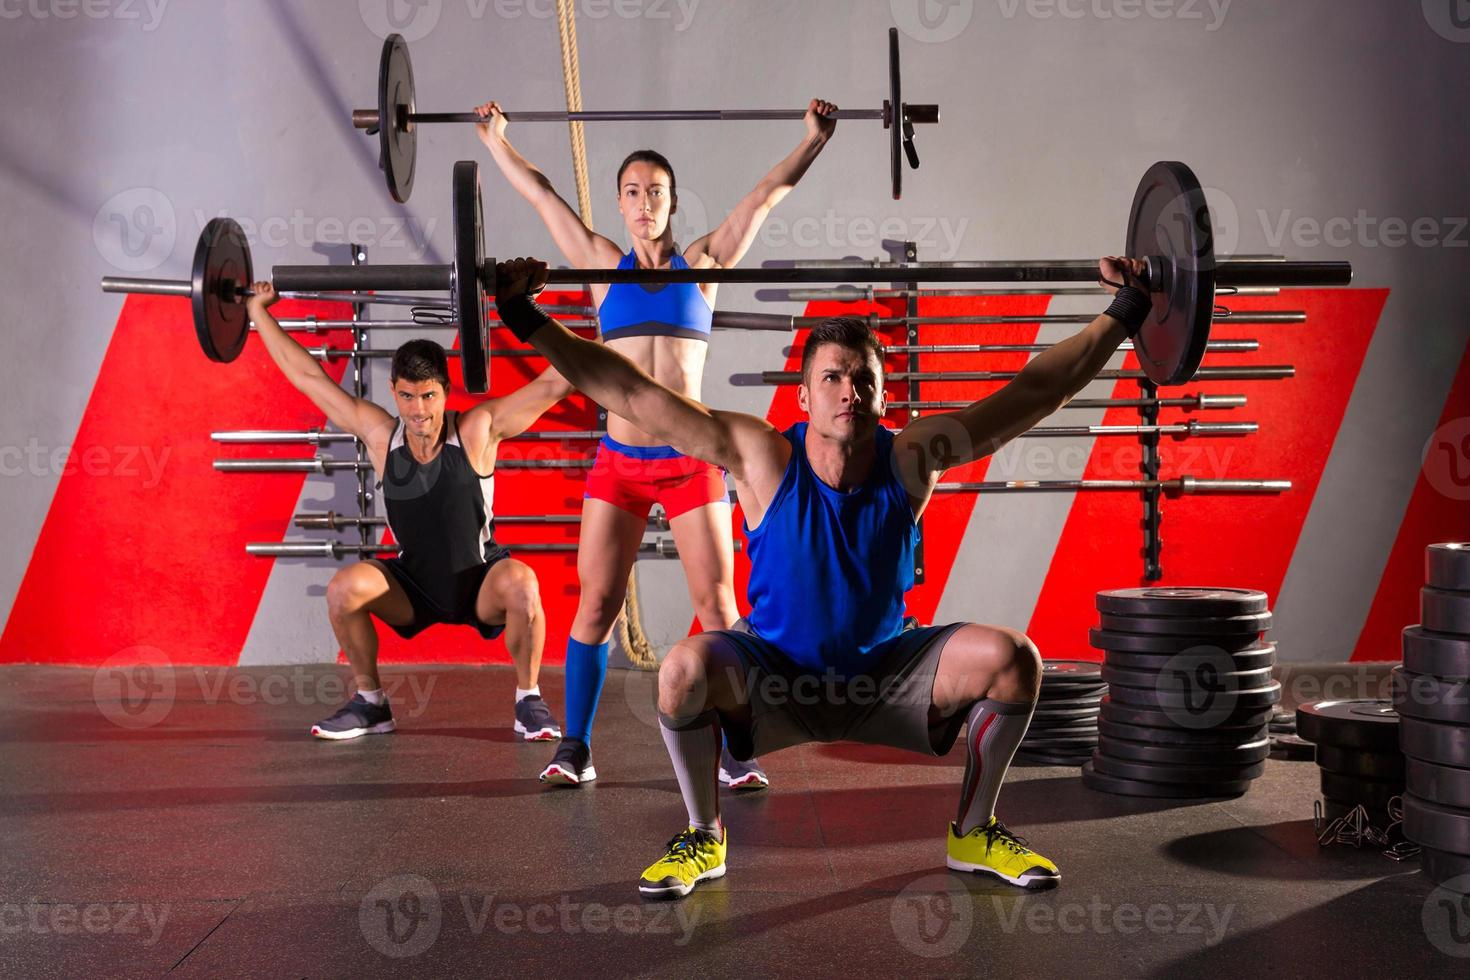 Barbell weight lifting group workout exercise gym photo